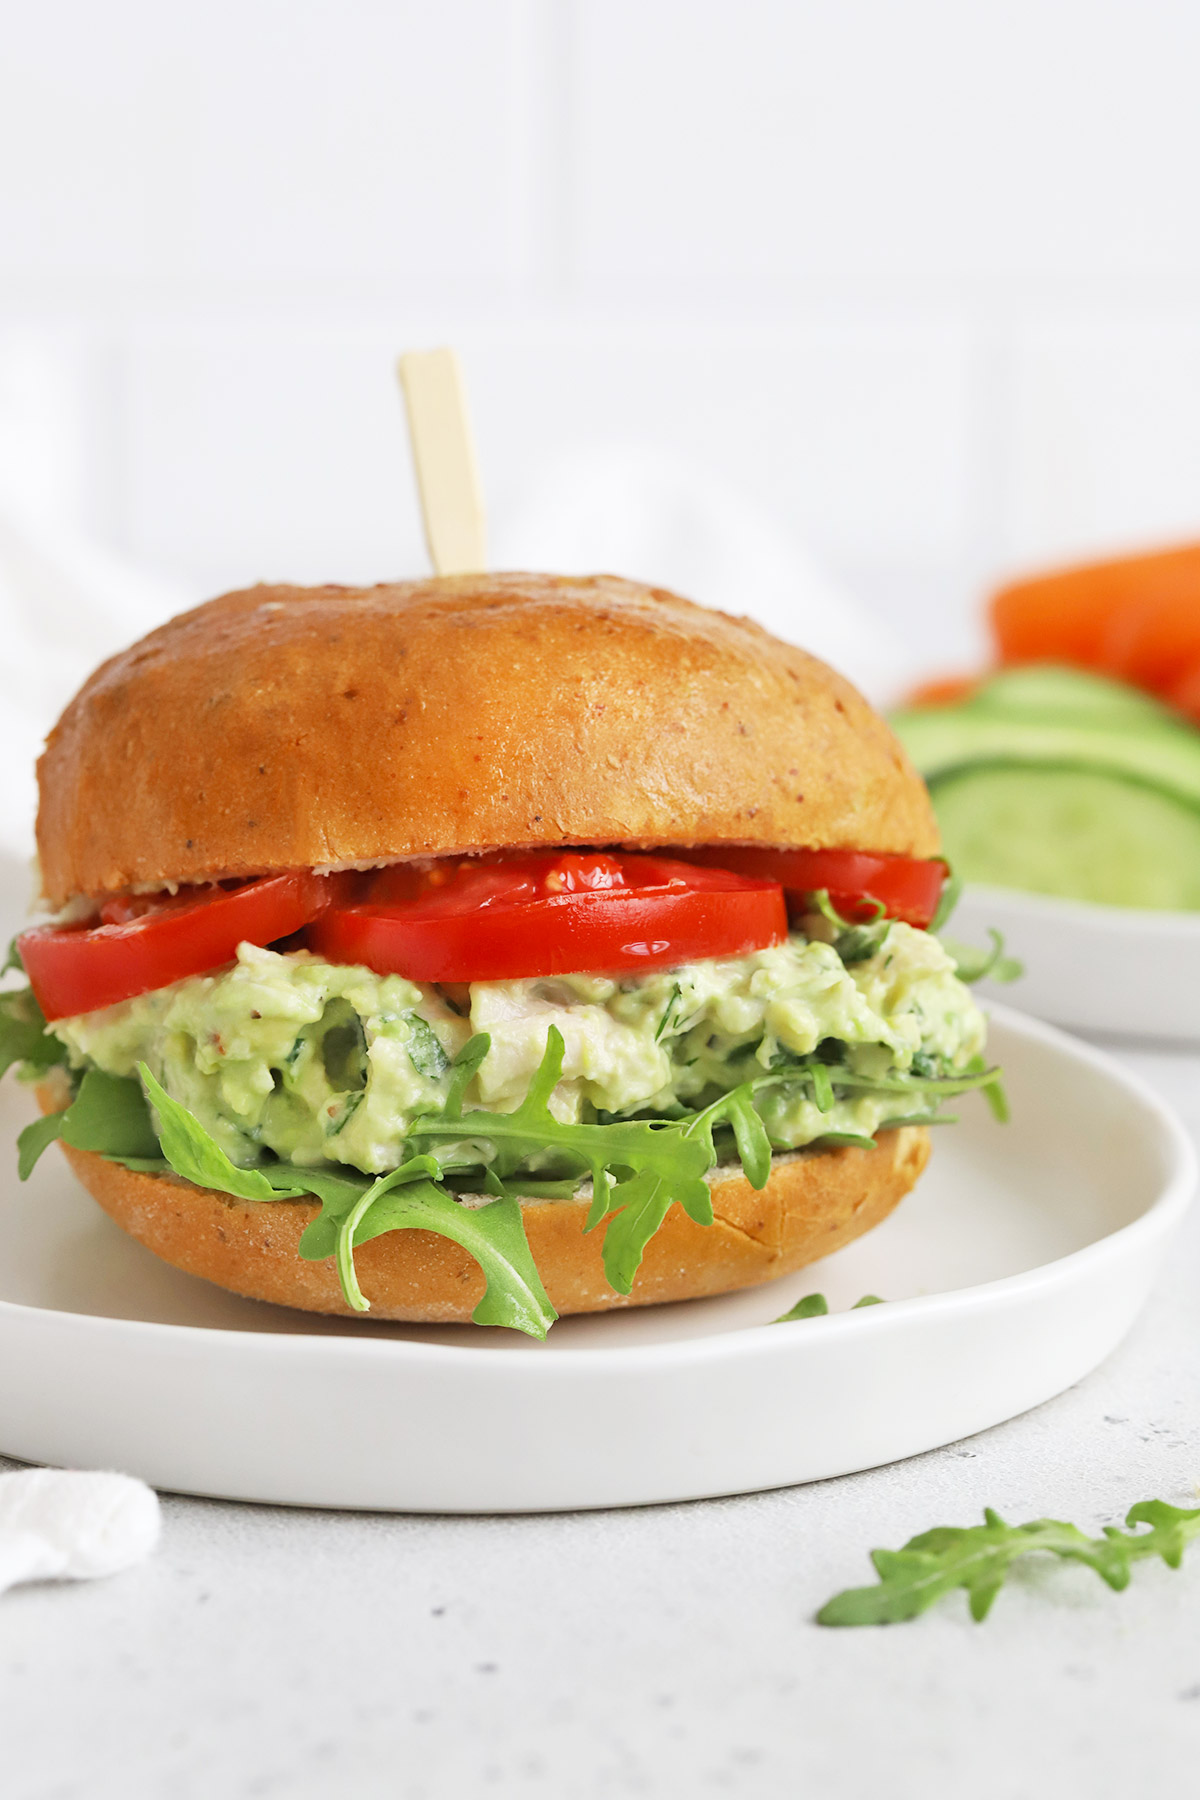 Close up front view of an avocado chicken salad sandwich with tomato and arugula on a white plate.